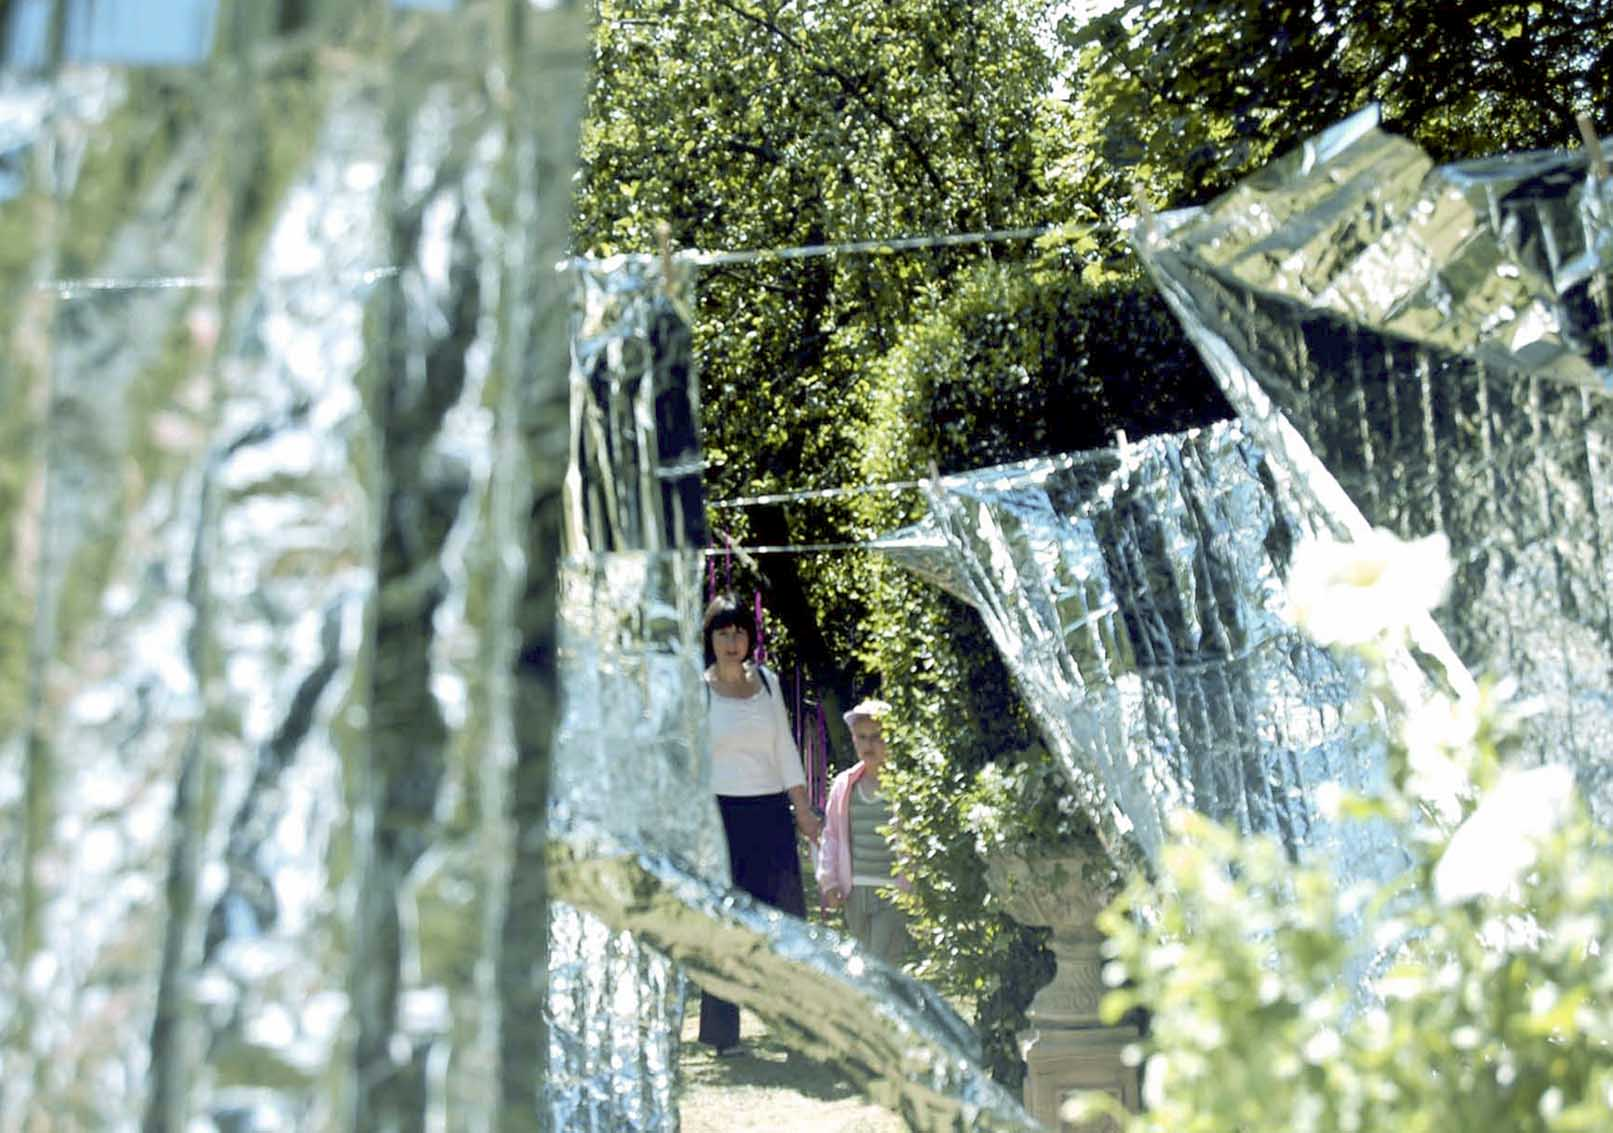 'Laundry Day' by artist Wendy Hardie. A site specific environmental art installation of rows of emergency blankets on silver washing lines, Durham 2006.